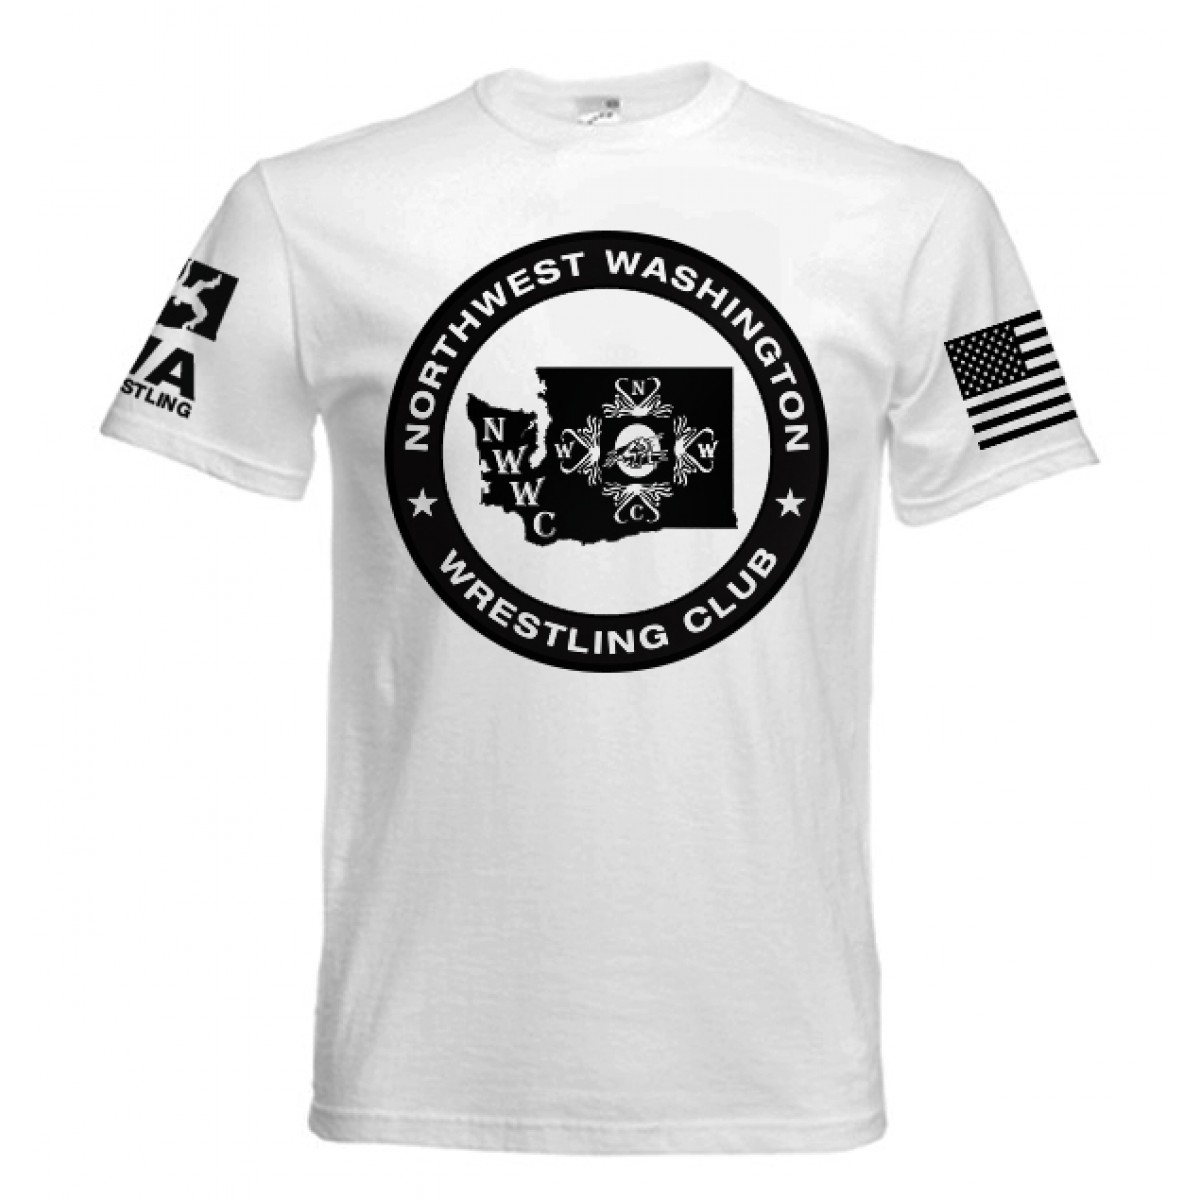 NWWC White T-shirt Black Logo-White-2XL